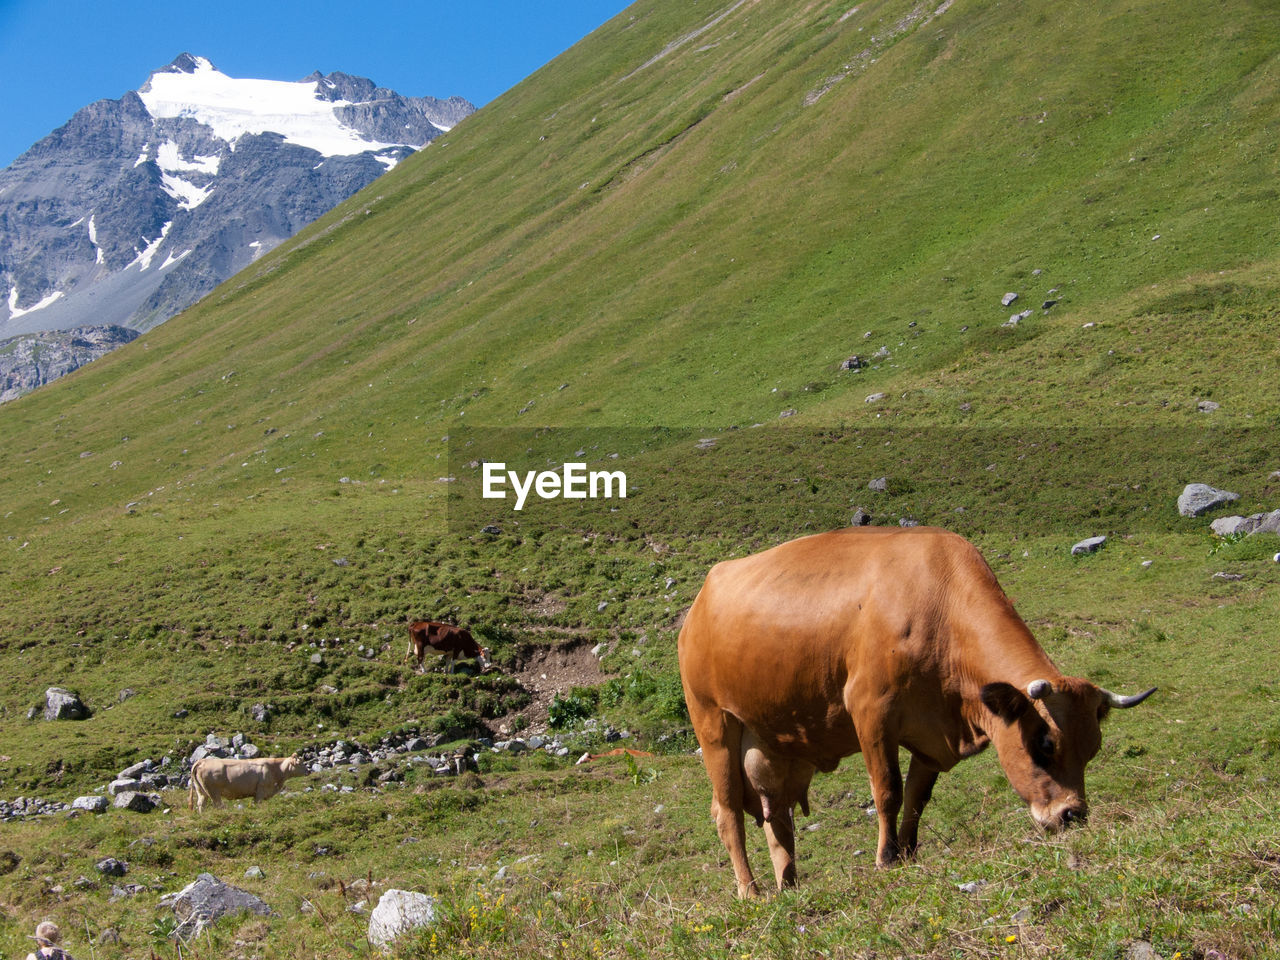 mountain, livestock, domestic animals, animal themes, nature, grass, grazing, cow, field, mammal, cattle, pasture, day, green color, no people, outdoors, landscape, standing, beauty in nature, scenics, mountain range, sky